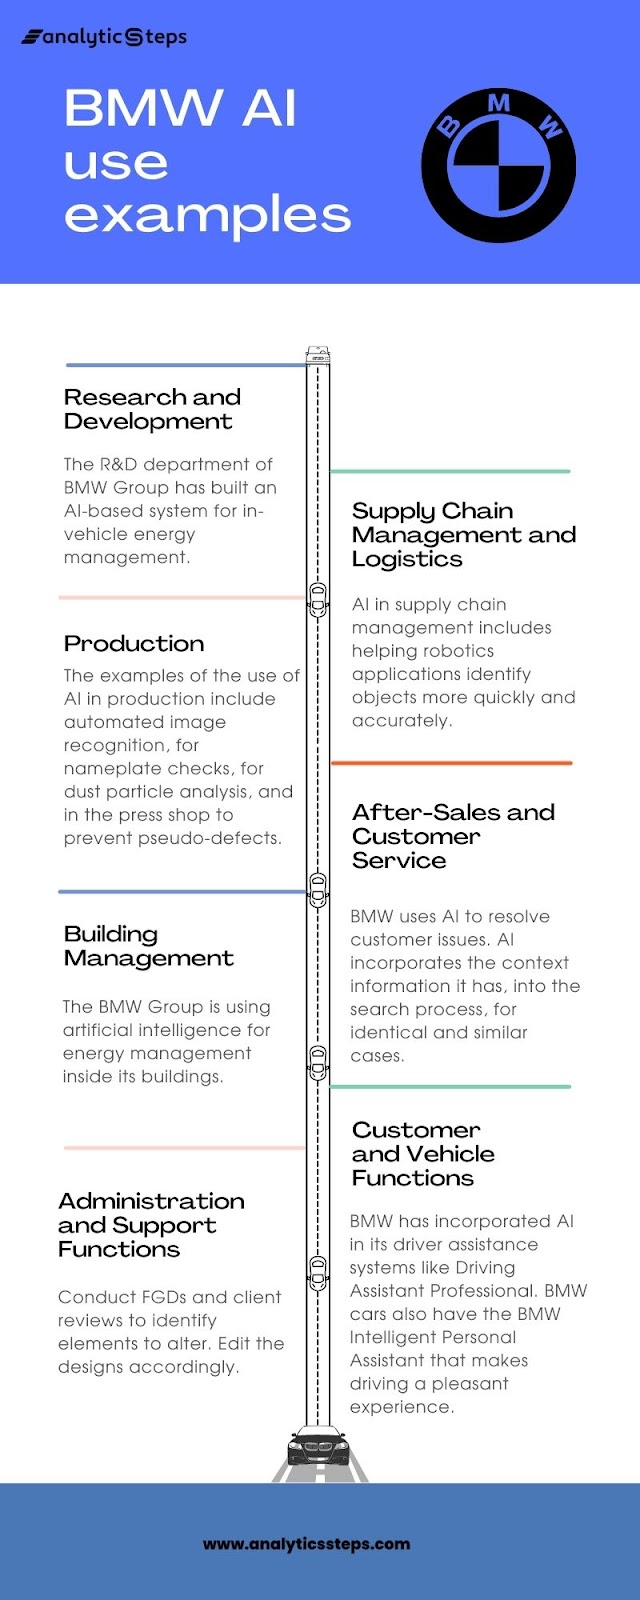 The infographic shows the use of AI by BMW in supply chain management, production, building management, R&D, administration and support functions, customer and vehicle functions, and customer service.